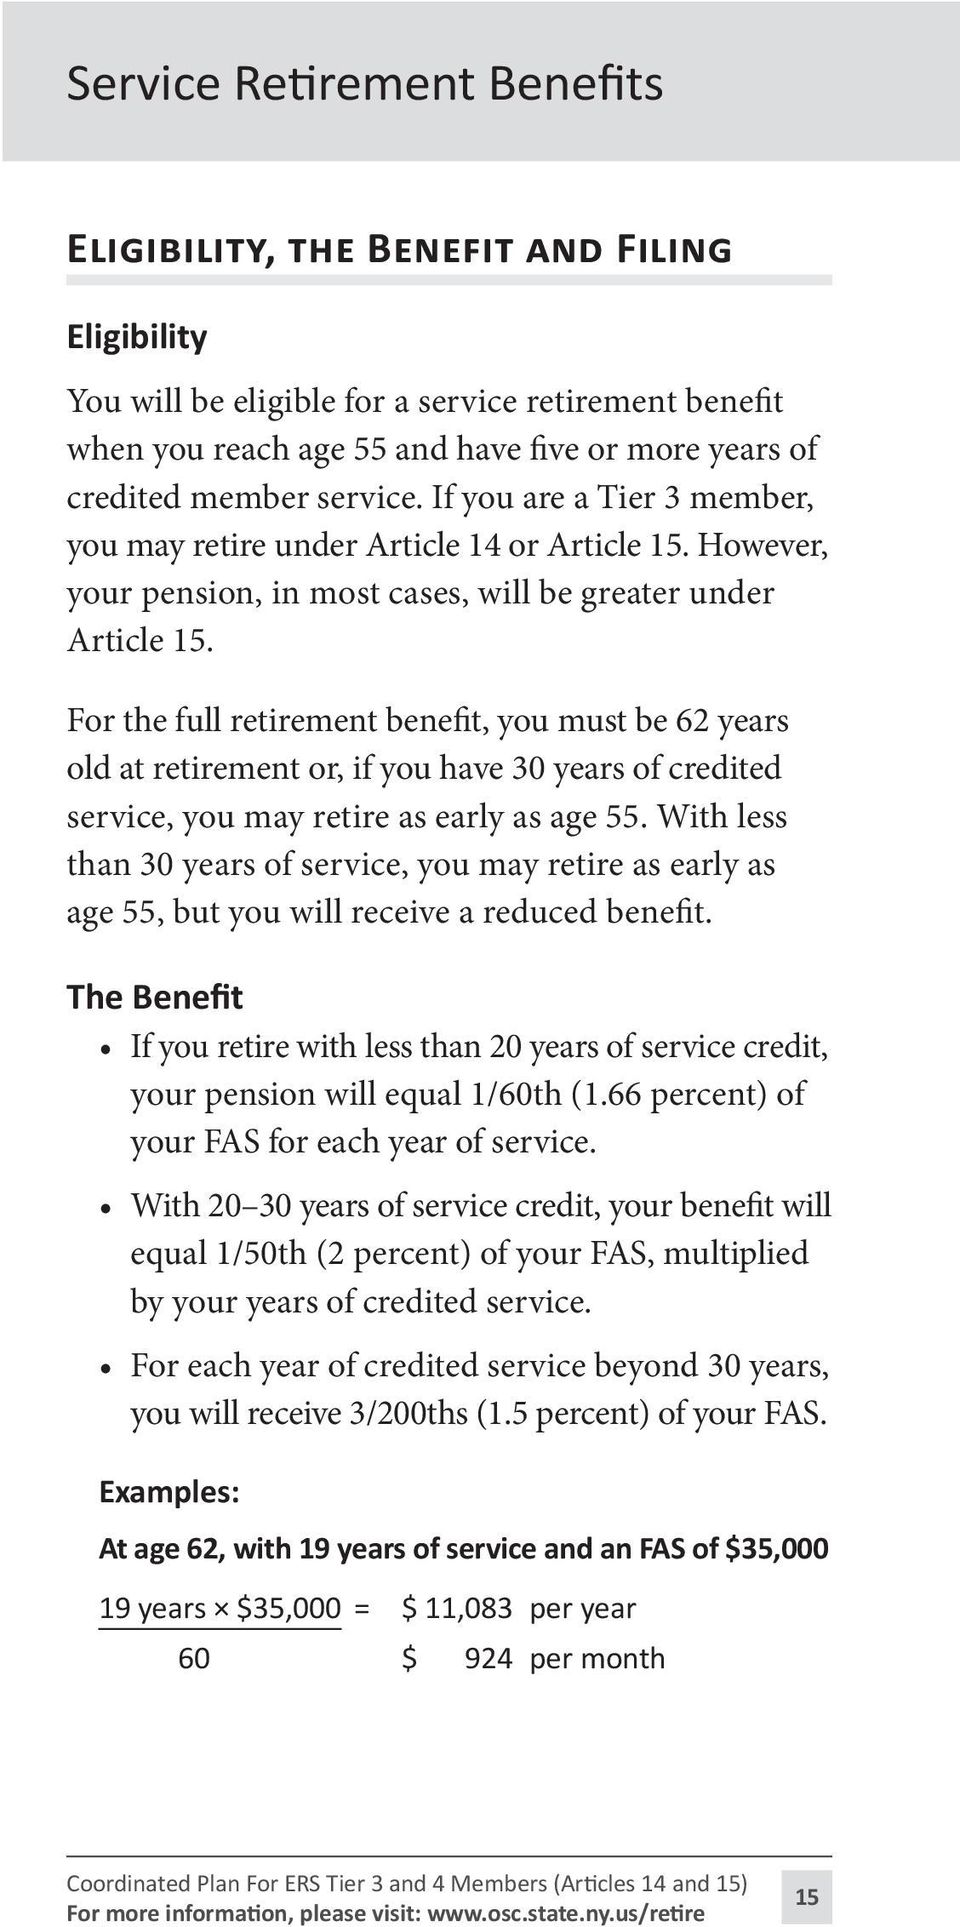 For the full retirement benefit, you must be 62 years old at retirement or, if you have 30 years of credited service, you may retire as early as age 55.